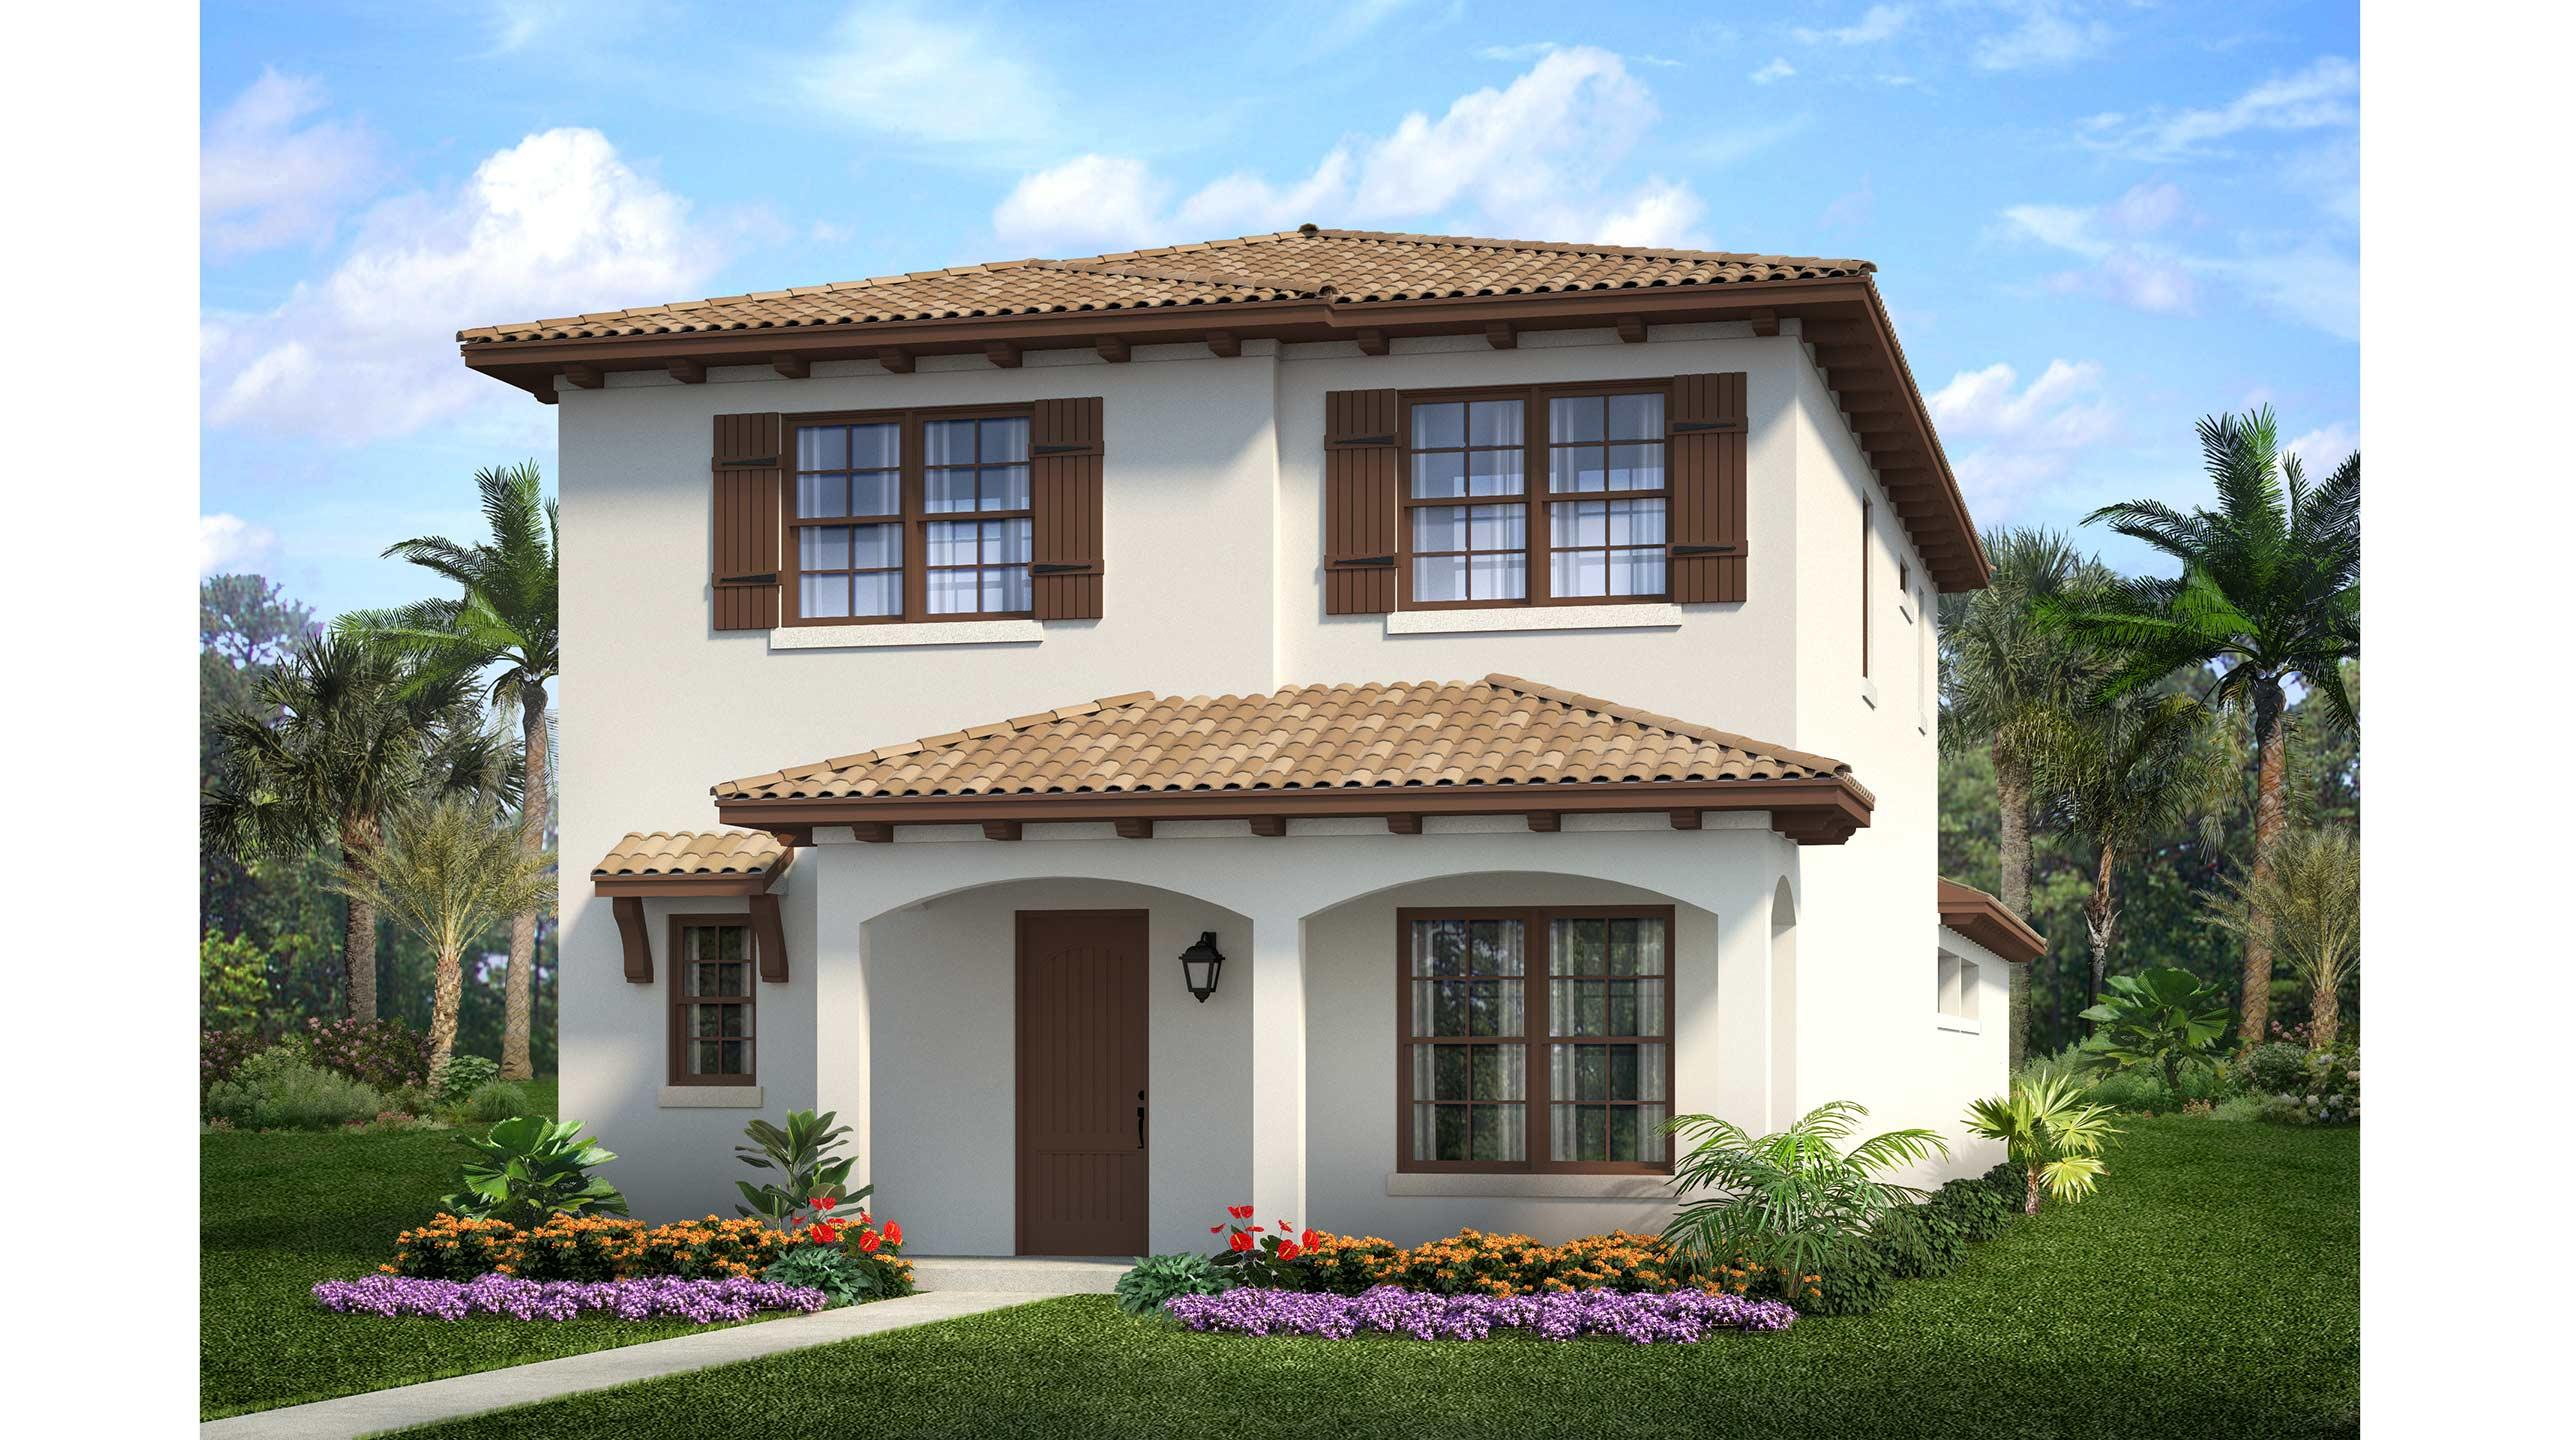 13457 Machiavelli Way - 33418 - FL - Palm Beach Gardens